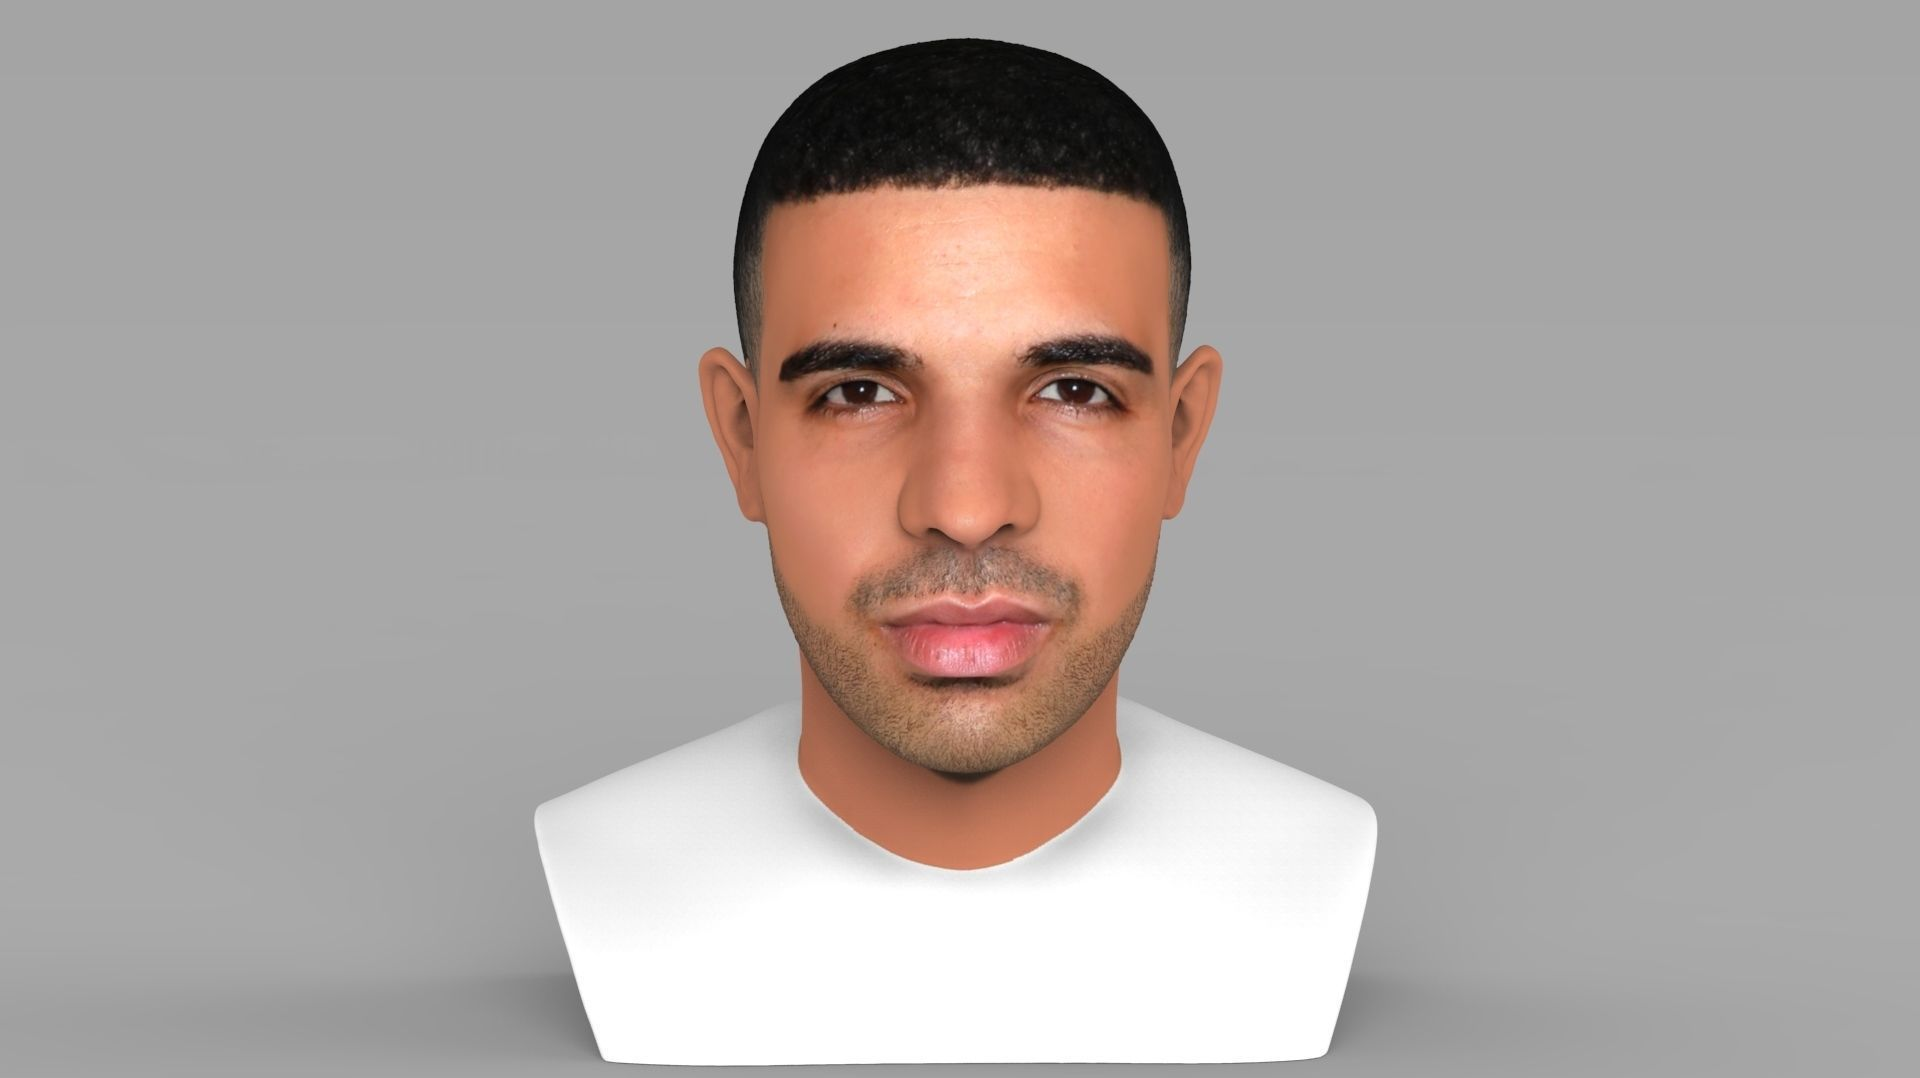 Drake bust ready for full color 3D printing